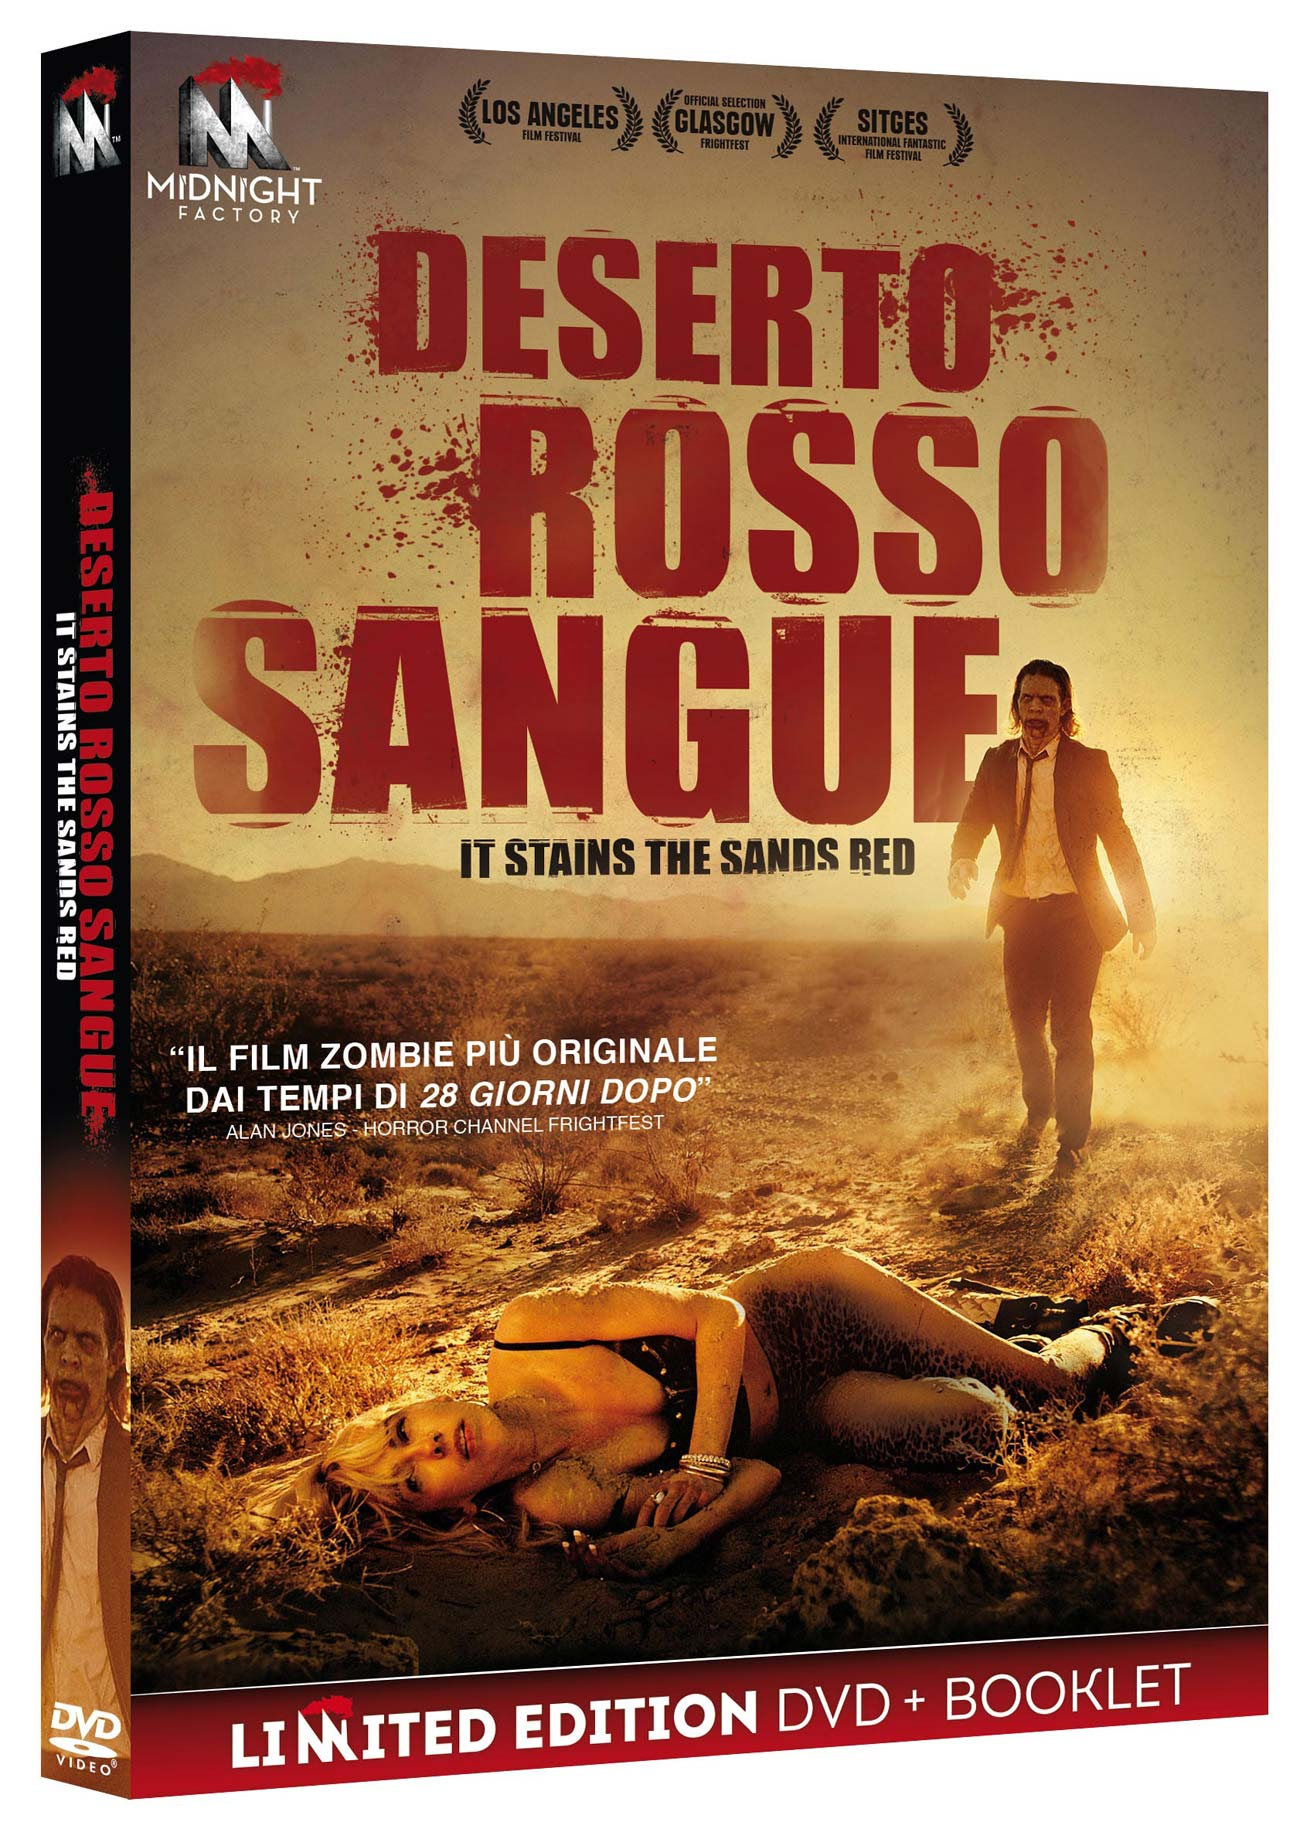 DESERTO ROSSO SANGUE (LTD EDITION) (DVD+BOOKLET) (DVD)